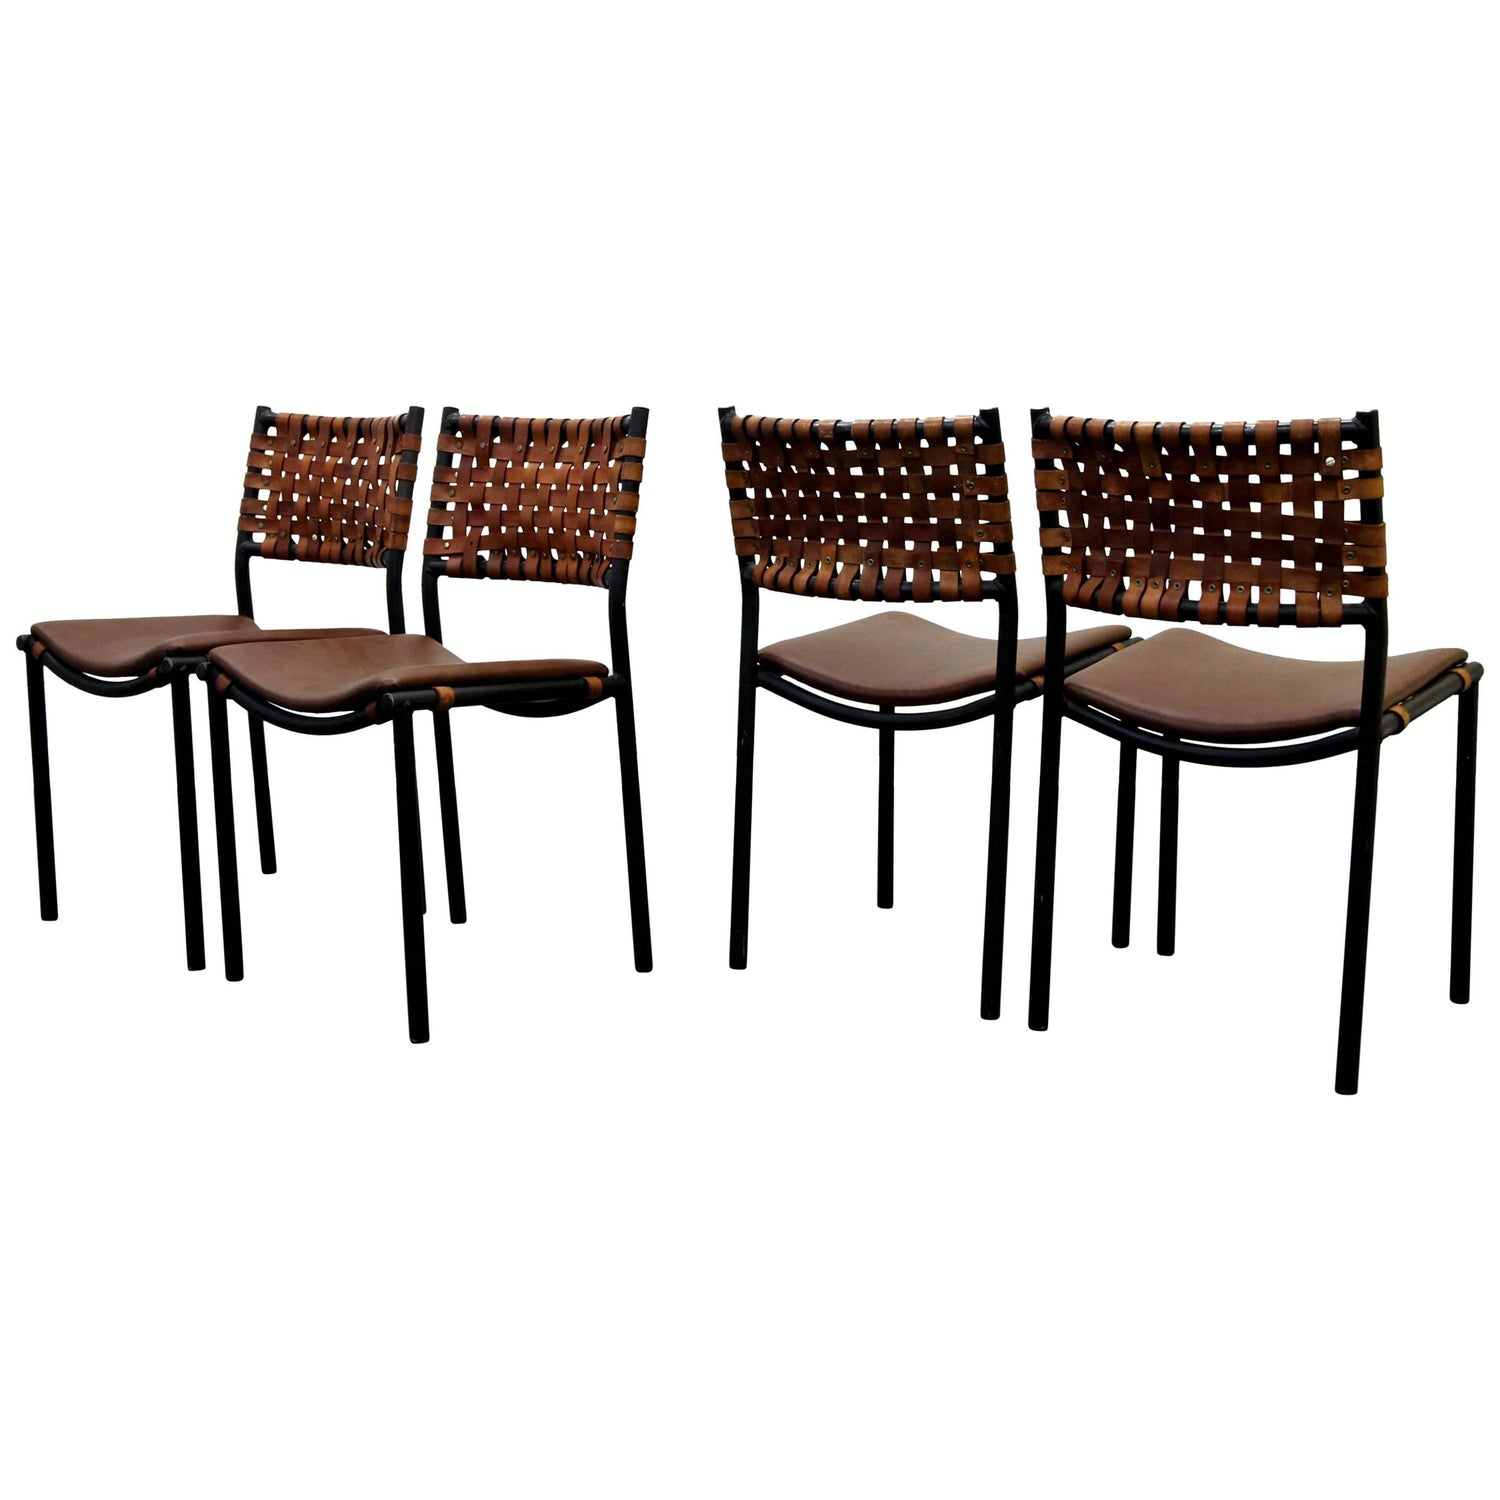 Arthur Umanoff Furniture Chairs Barstools & More 151 For Sale